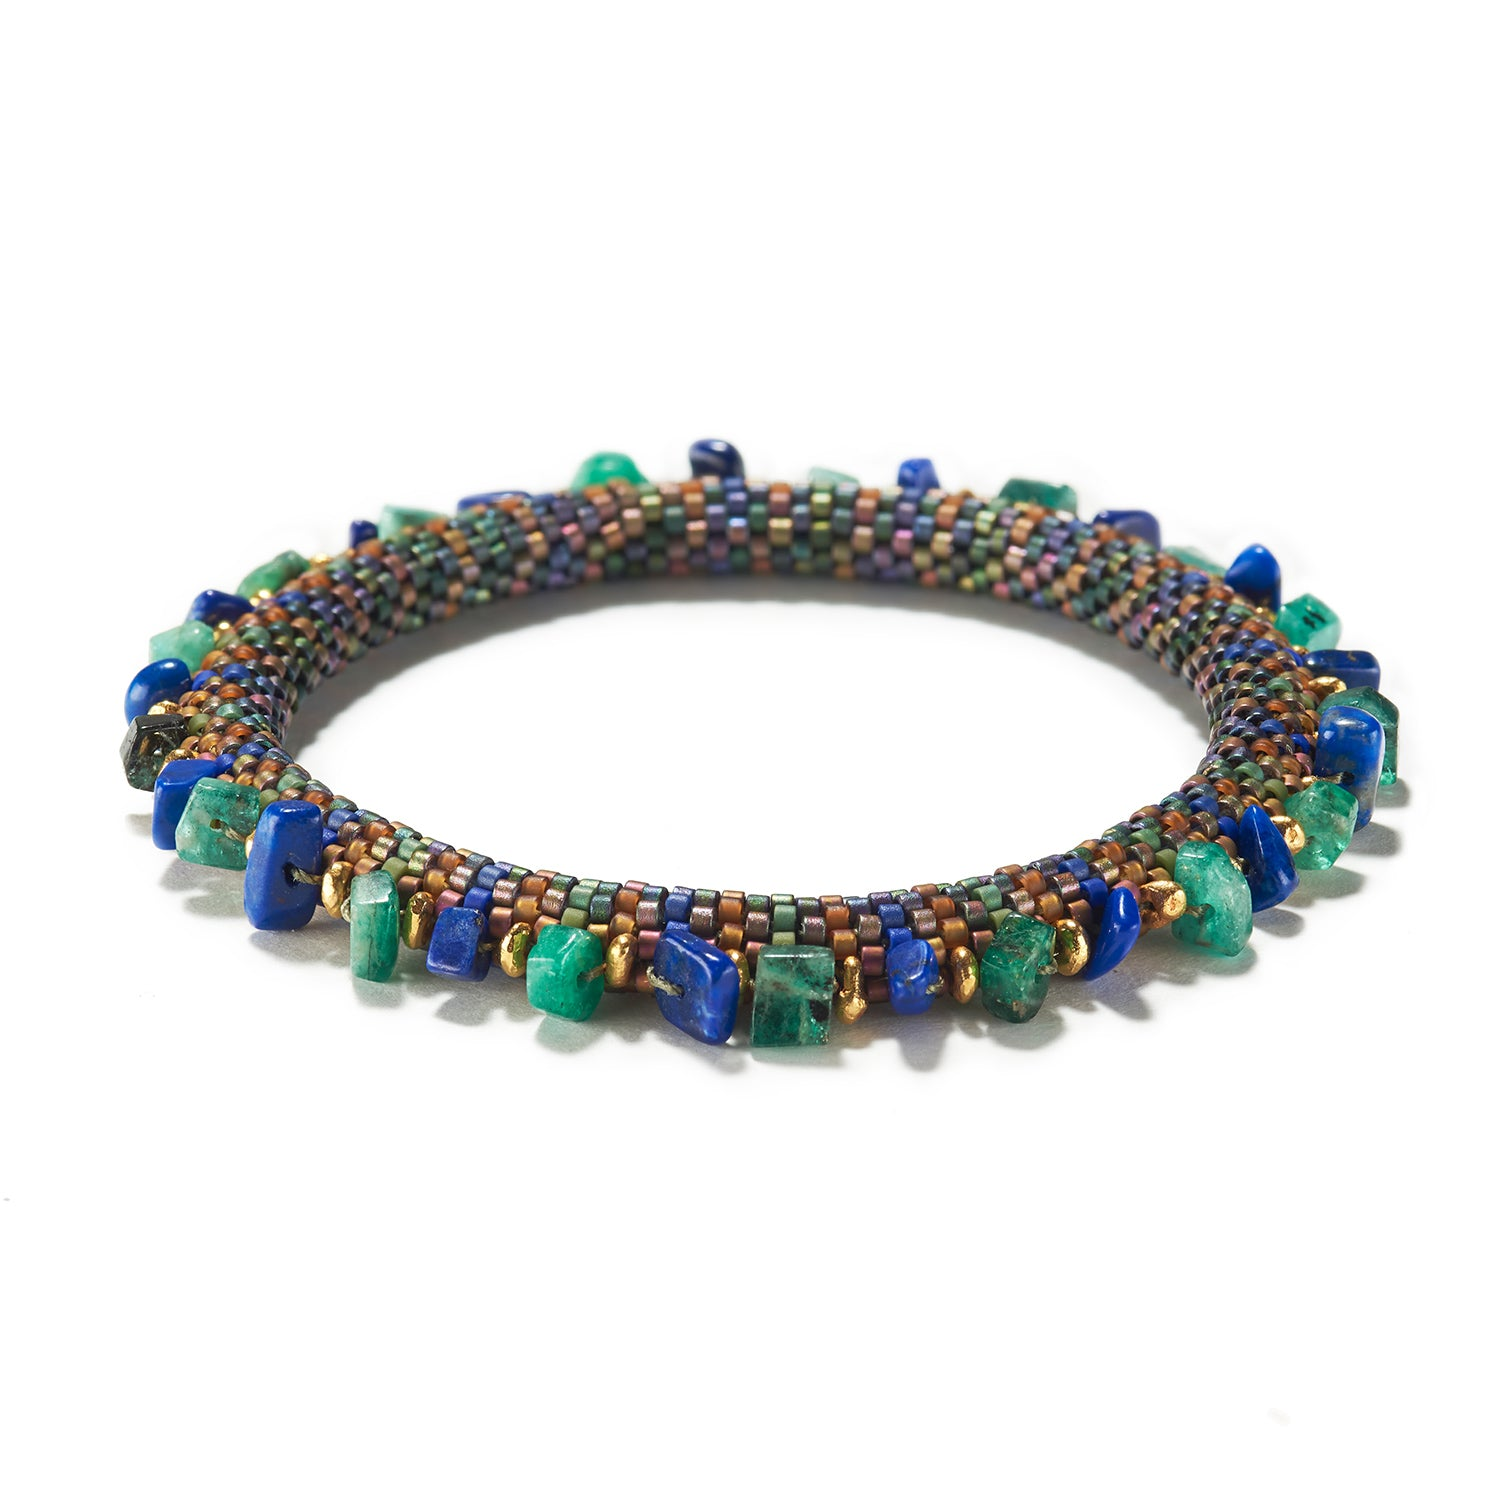 Emerald and Lapis Bracelet